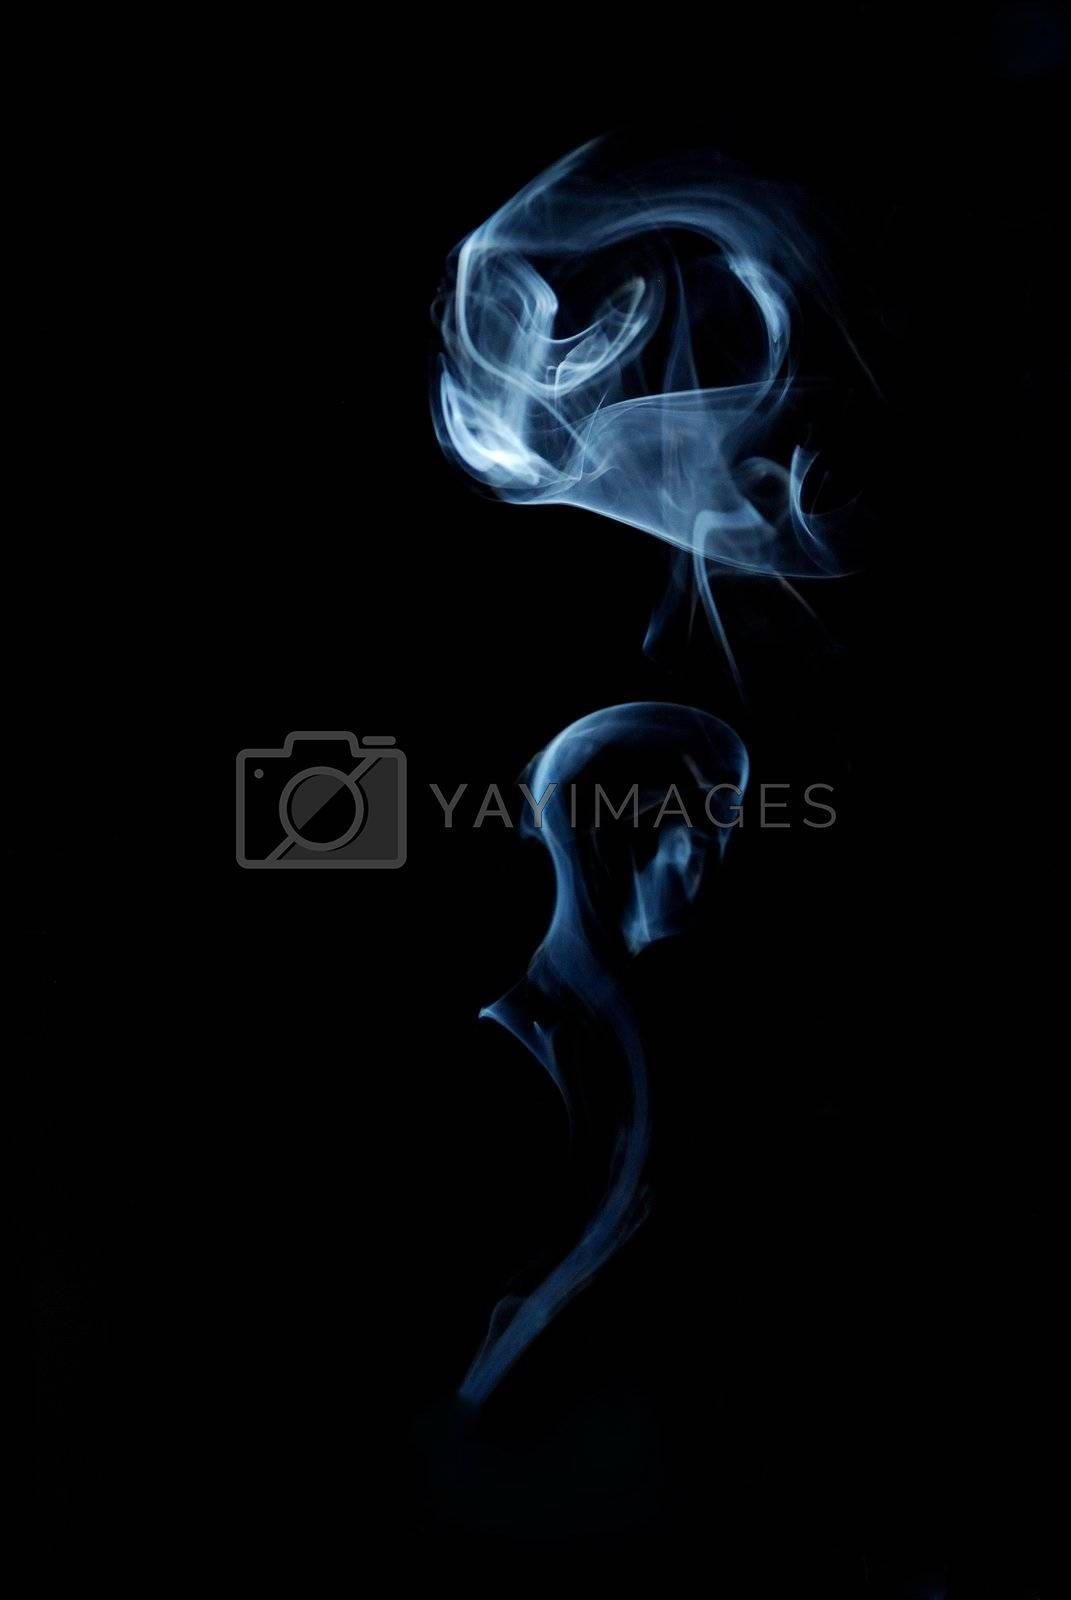 smoke like flowers in blue with black background